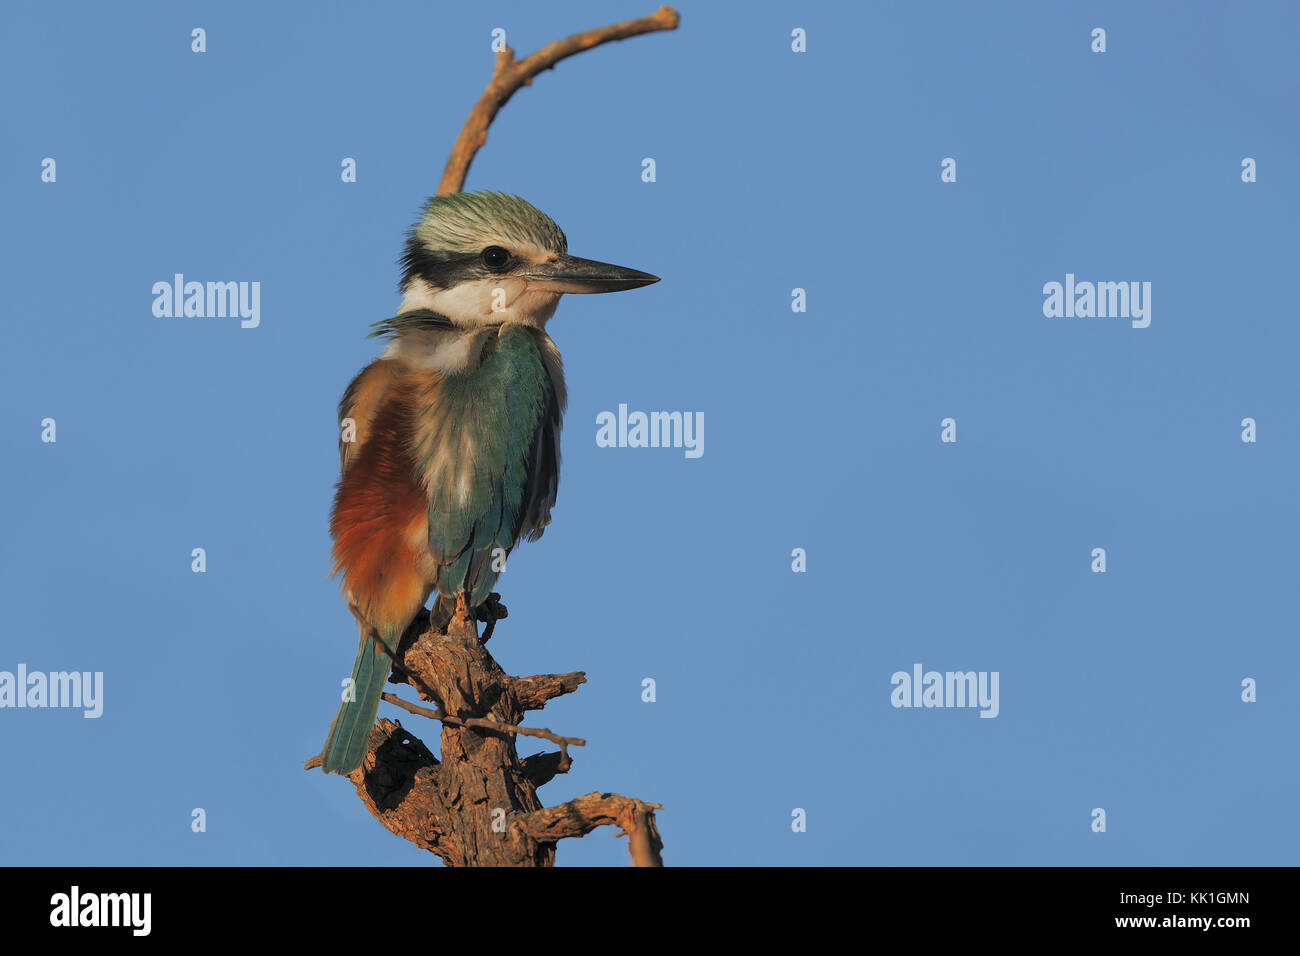 Red-backed Kingfisher - Stock Image